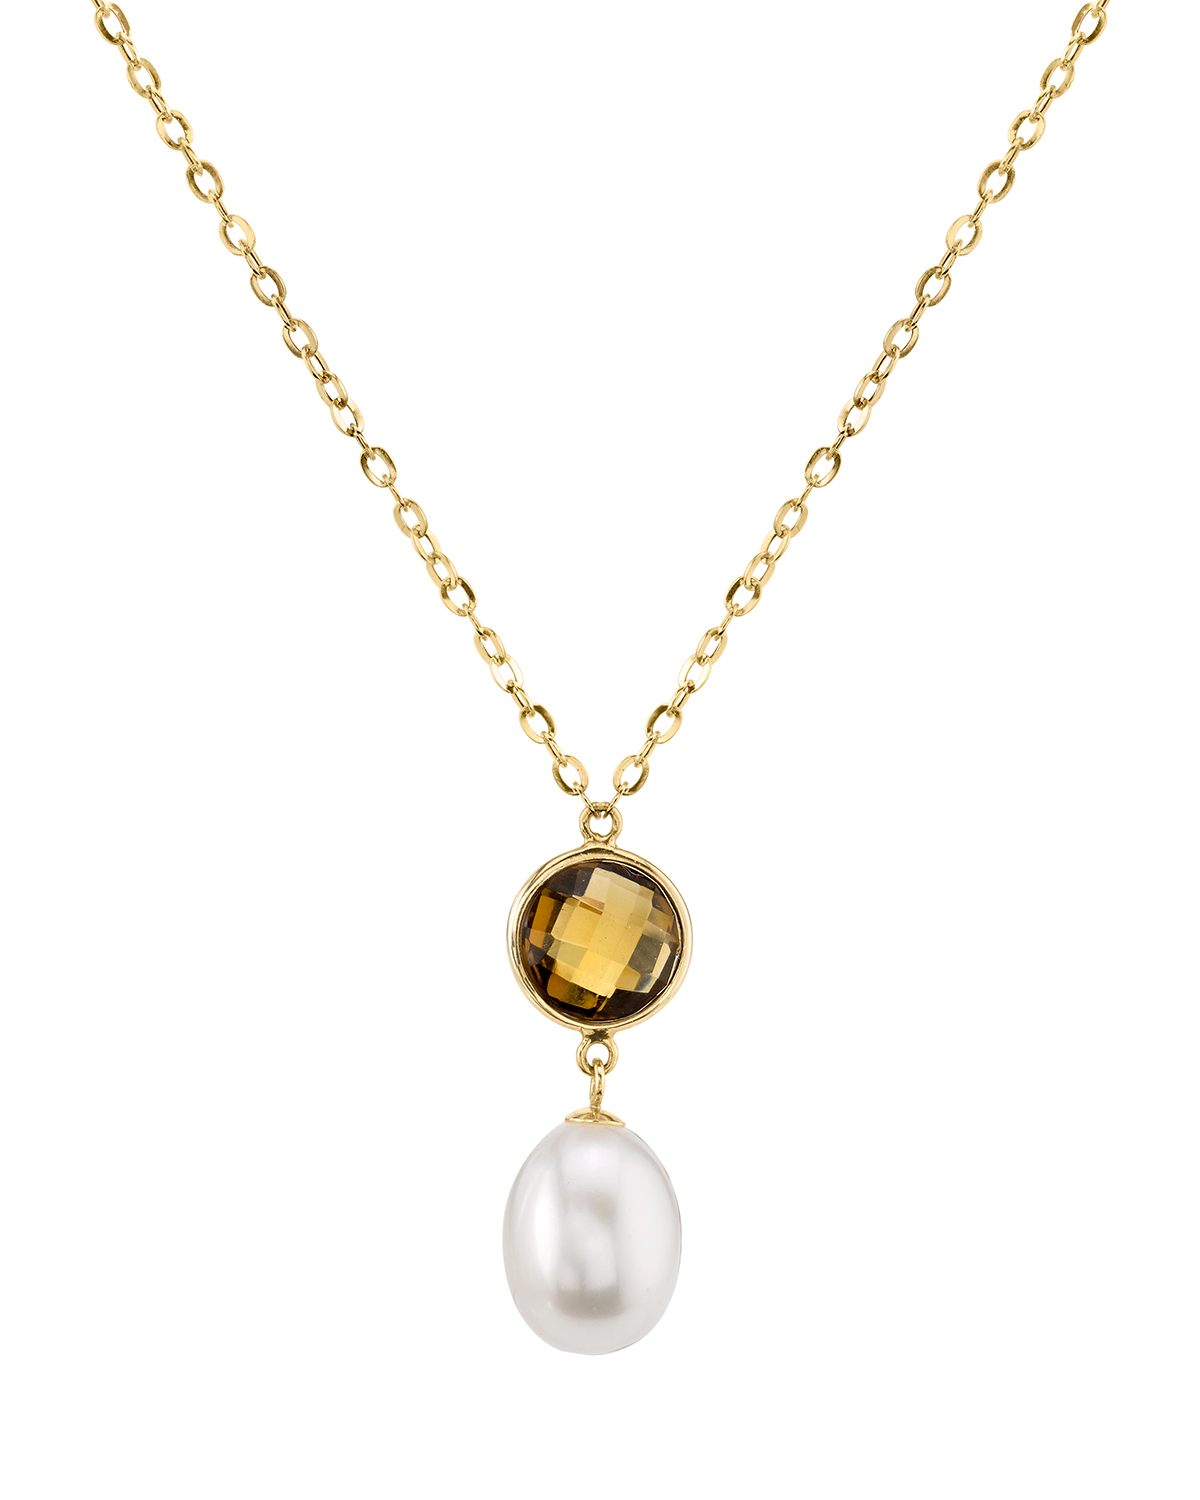 14K Gold Drop-Shape Freshwater Cultured Pearl & Quartz Savanah Pendant